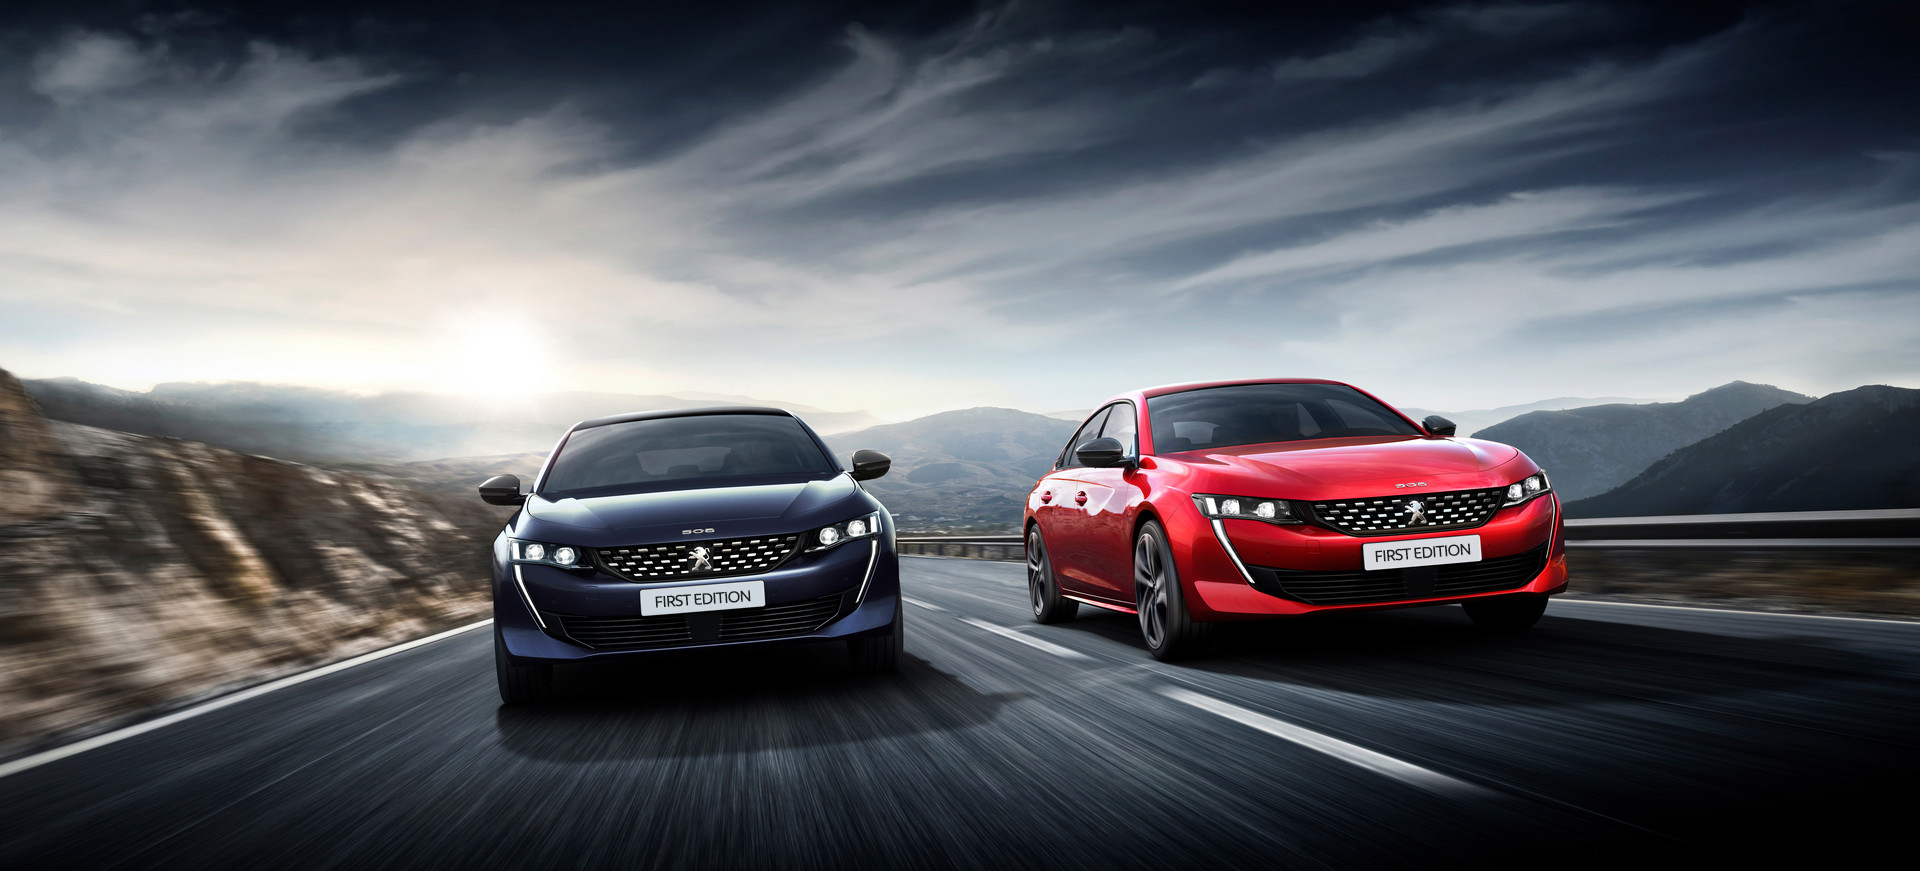 Classy Peugeot 508 is best saloon of the year